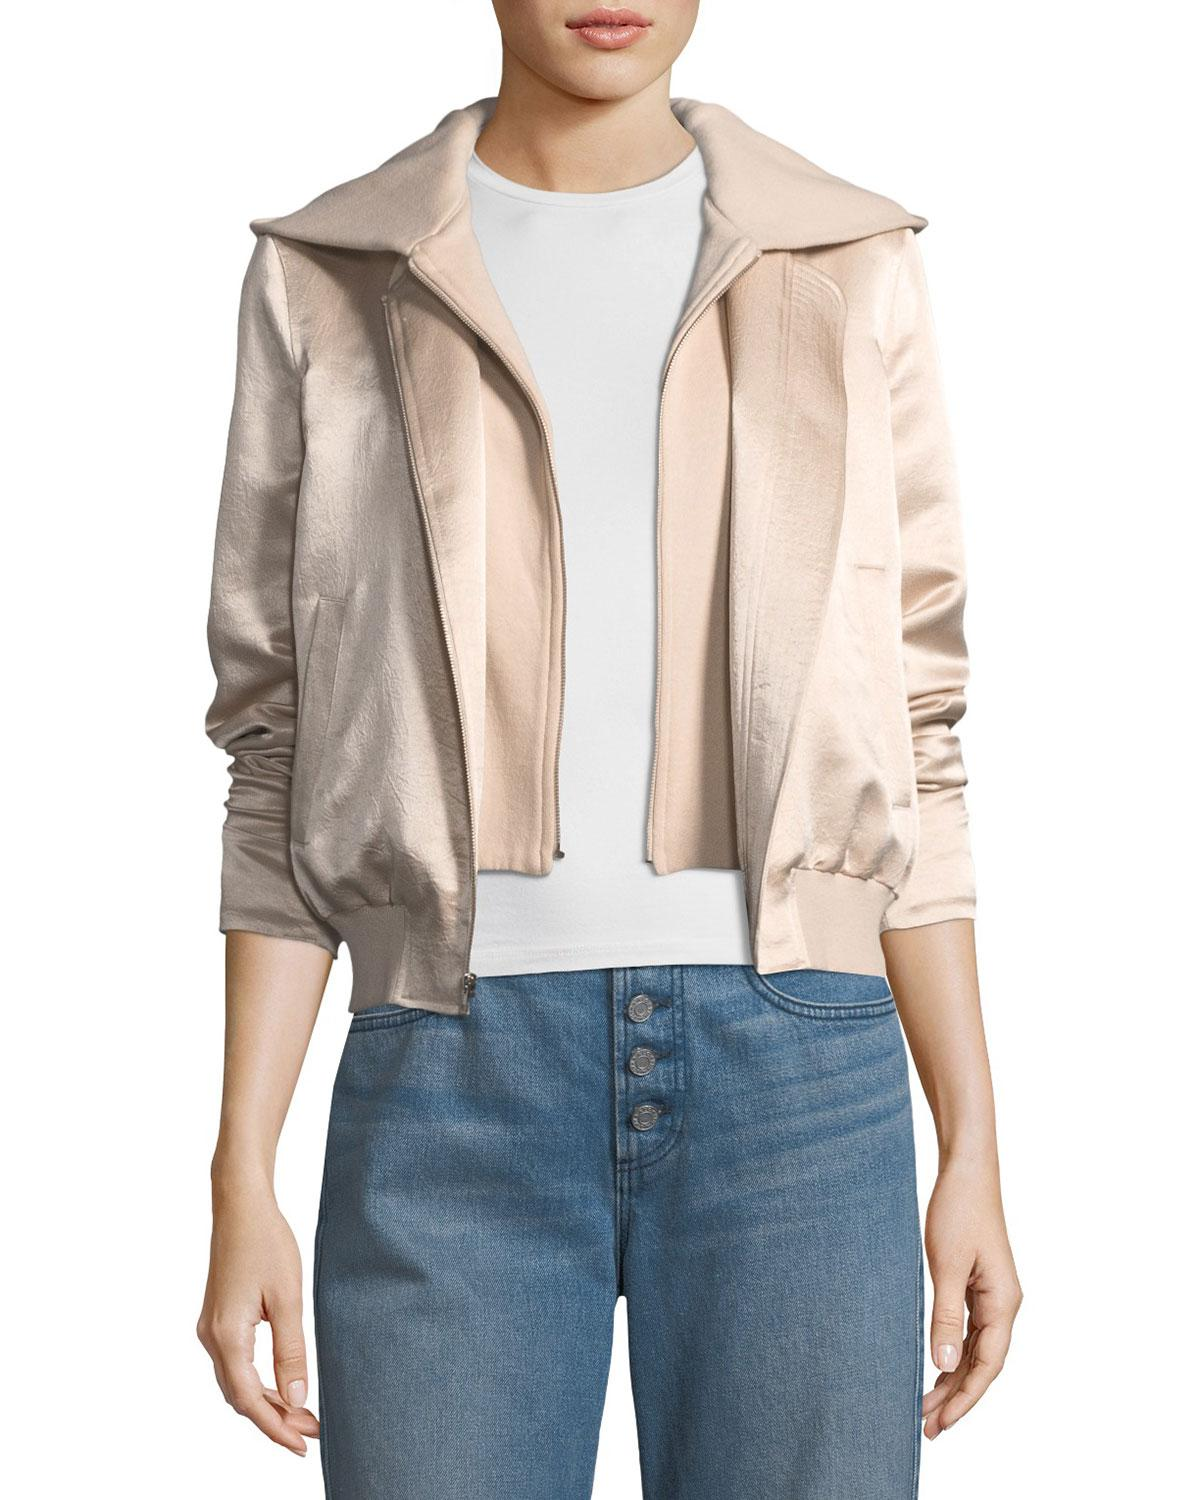 A.L.C. Lightweight Bomber Jacket w/ Tags Cheap Sale Low Shipping Fee 1vsyLn